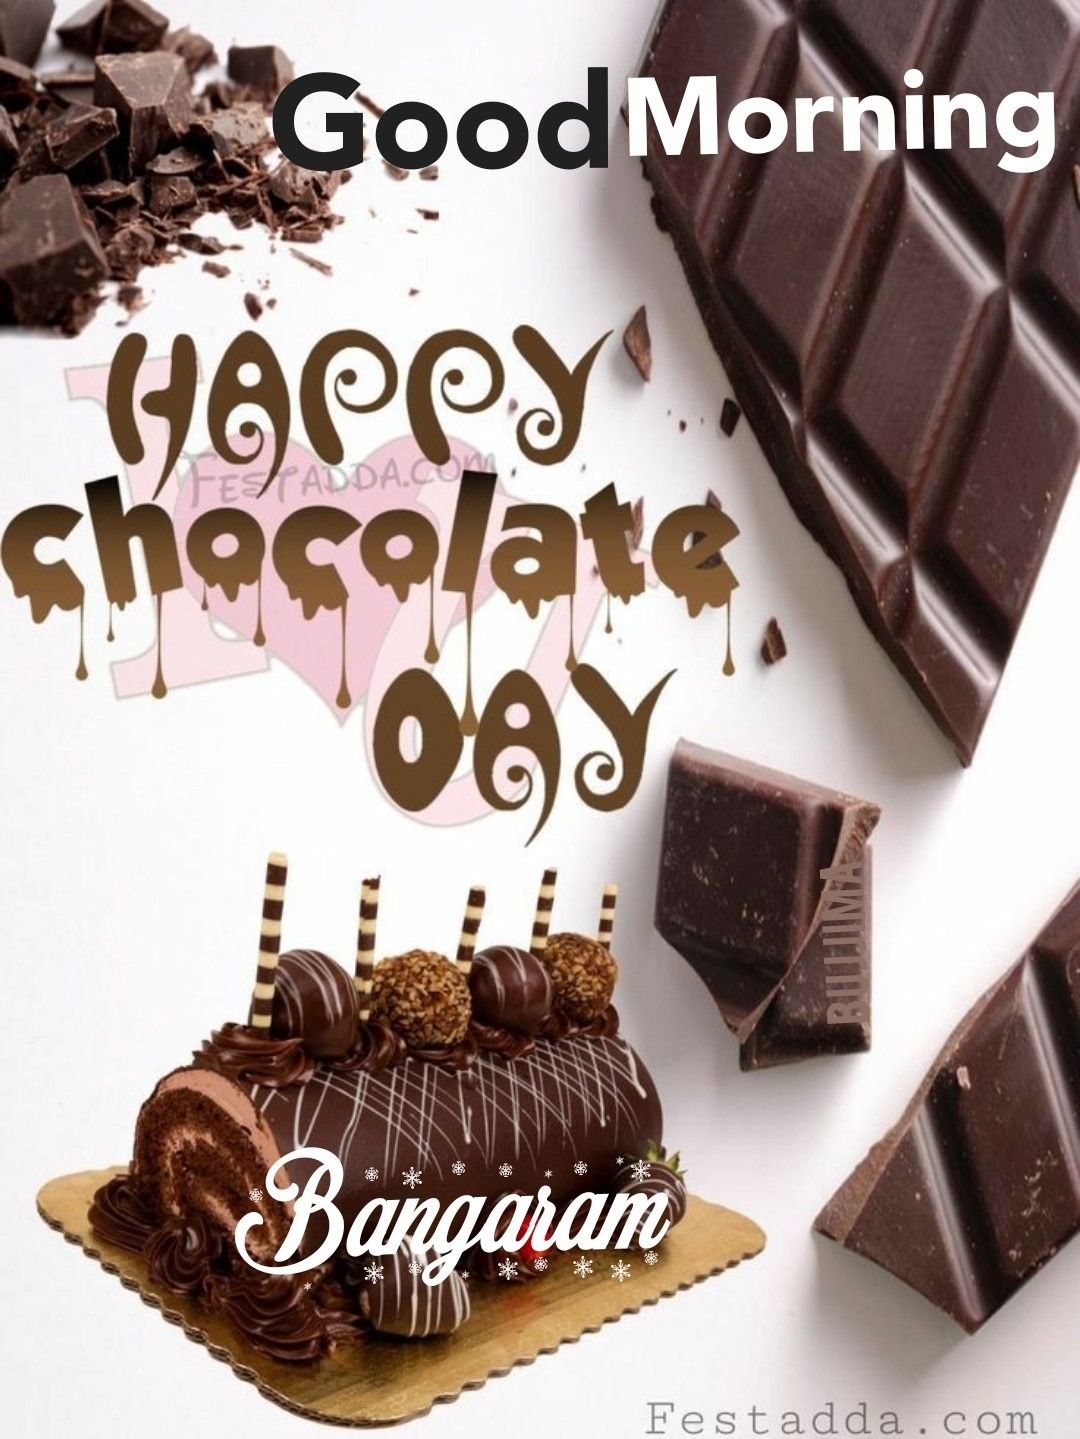 Pin By Drabdulsalam On Allah Almighty Happy Chocolate Day Happy Chocolate Day Wishes Happy Chocolate Day Images Happy chocolate day images n quotes